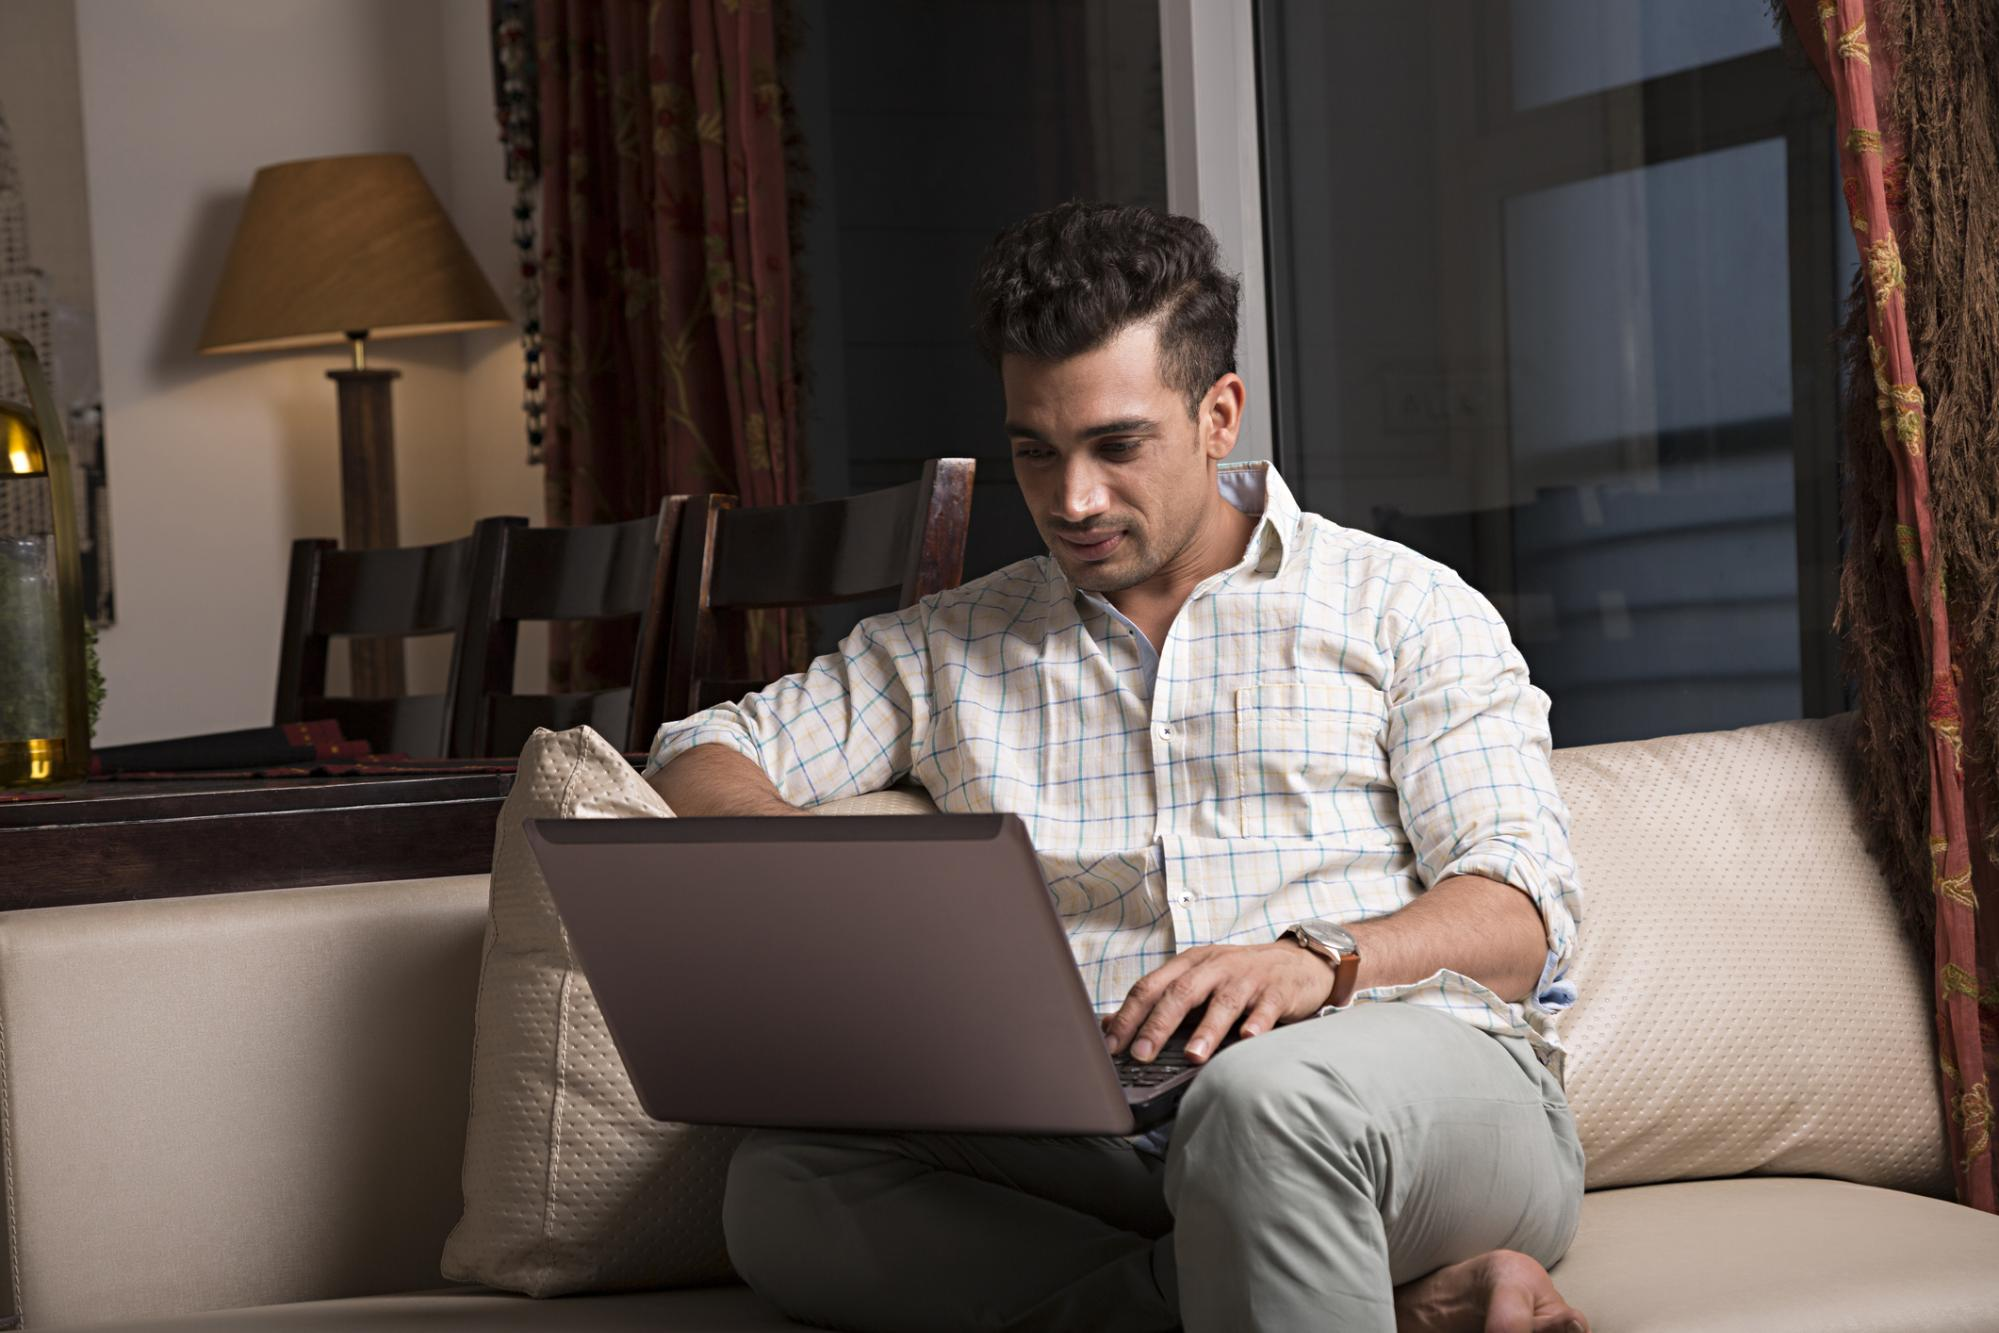 millennial looking at computer on couch